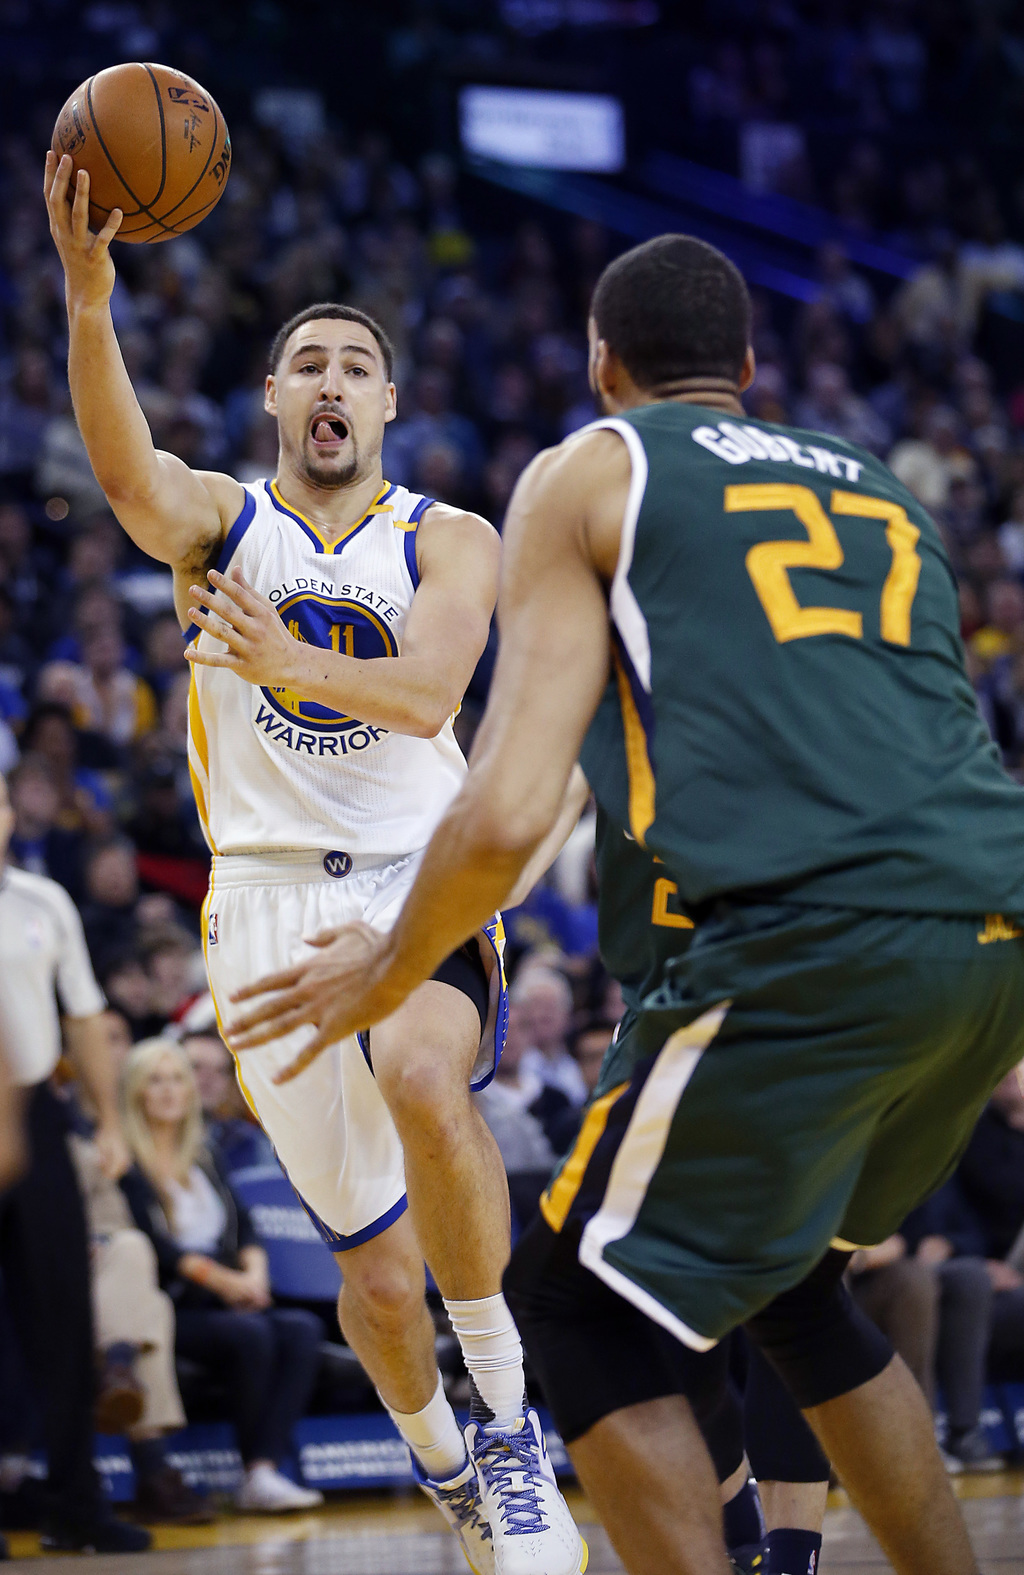 Golden State Warriors guard Klay Thompson (11) drives to the basket against Utah Jazz center Rudy Gobert (27) during the first half of ...